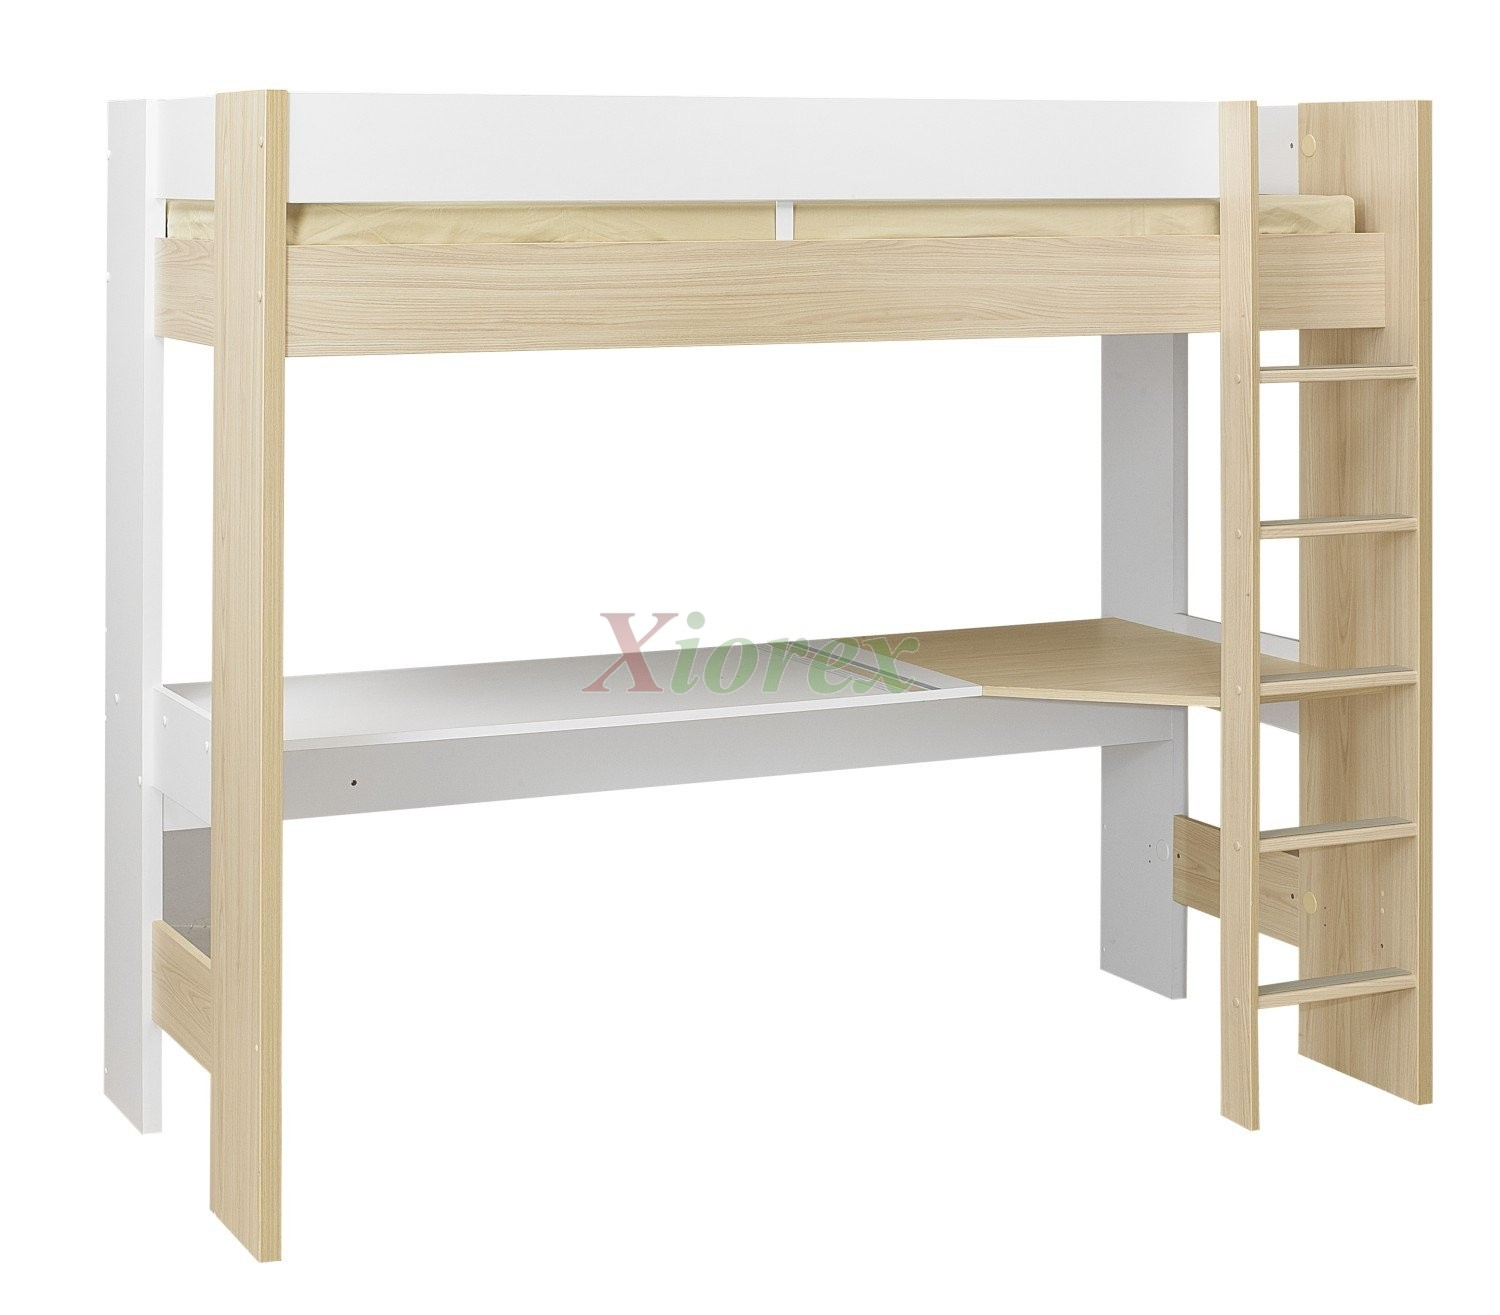 Single bed desk interior design ideas for Single bunk bed